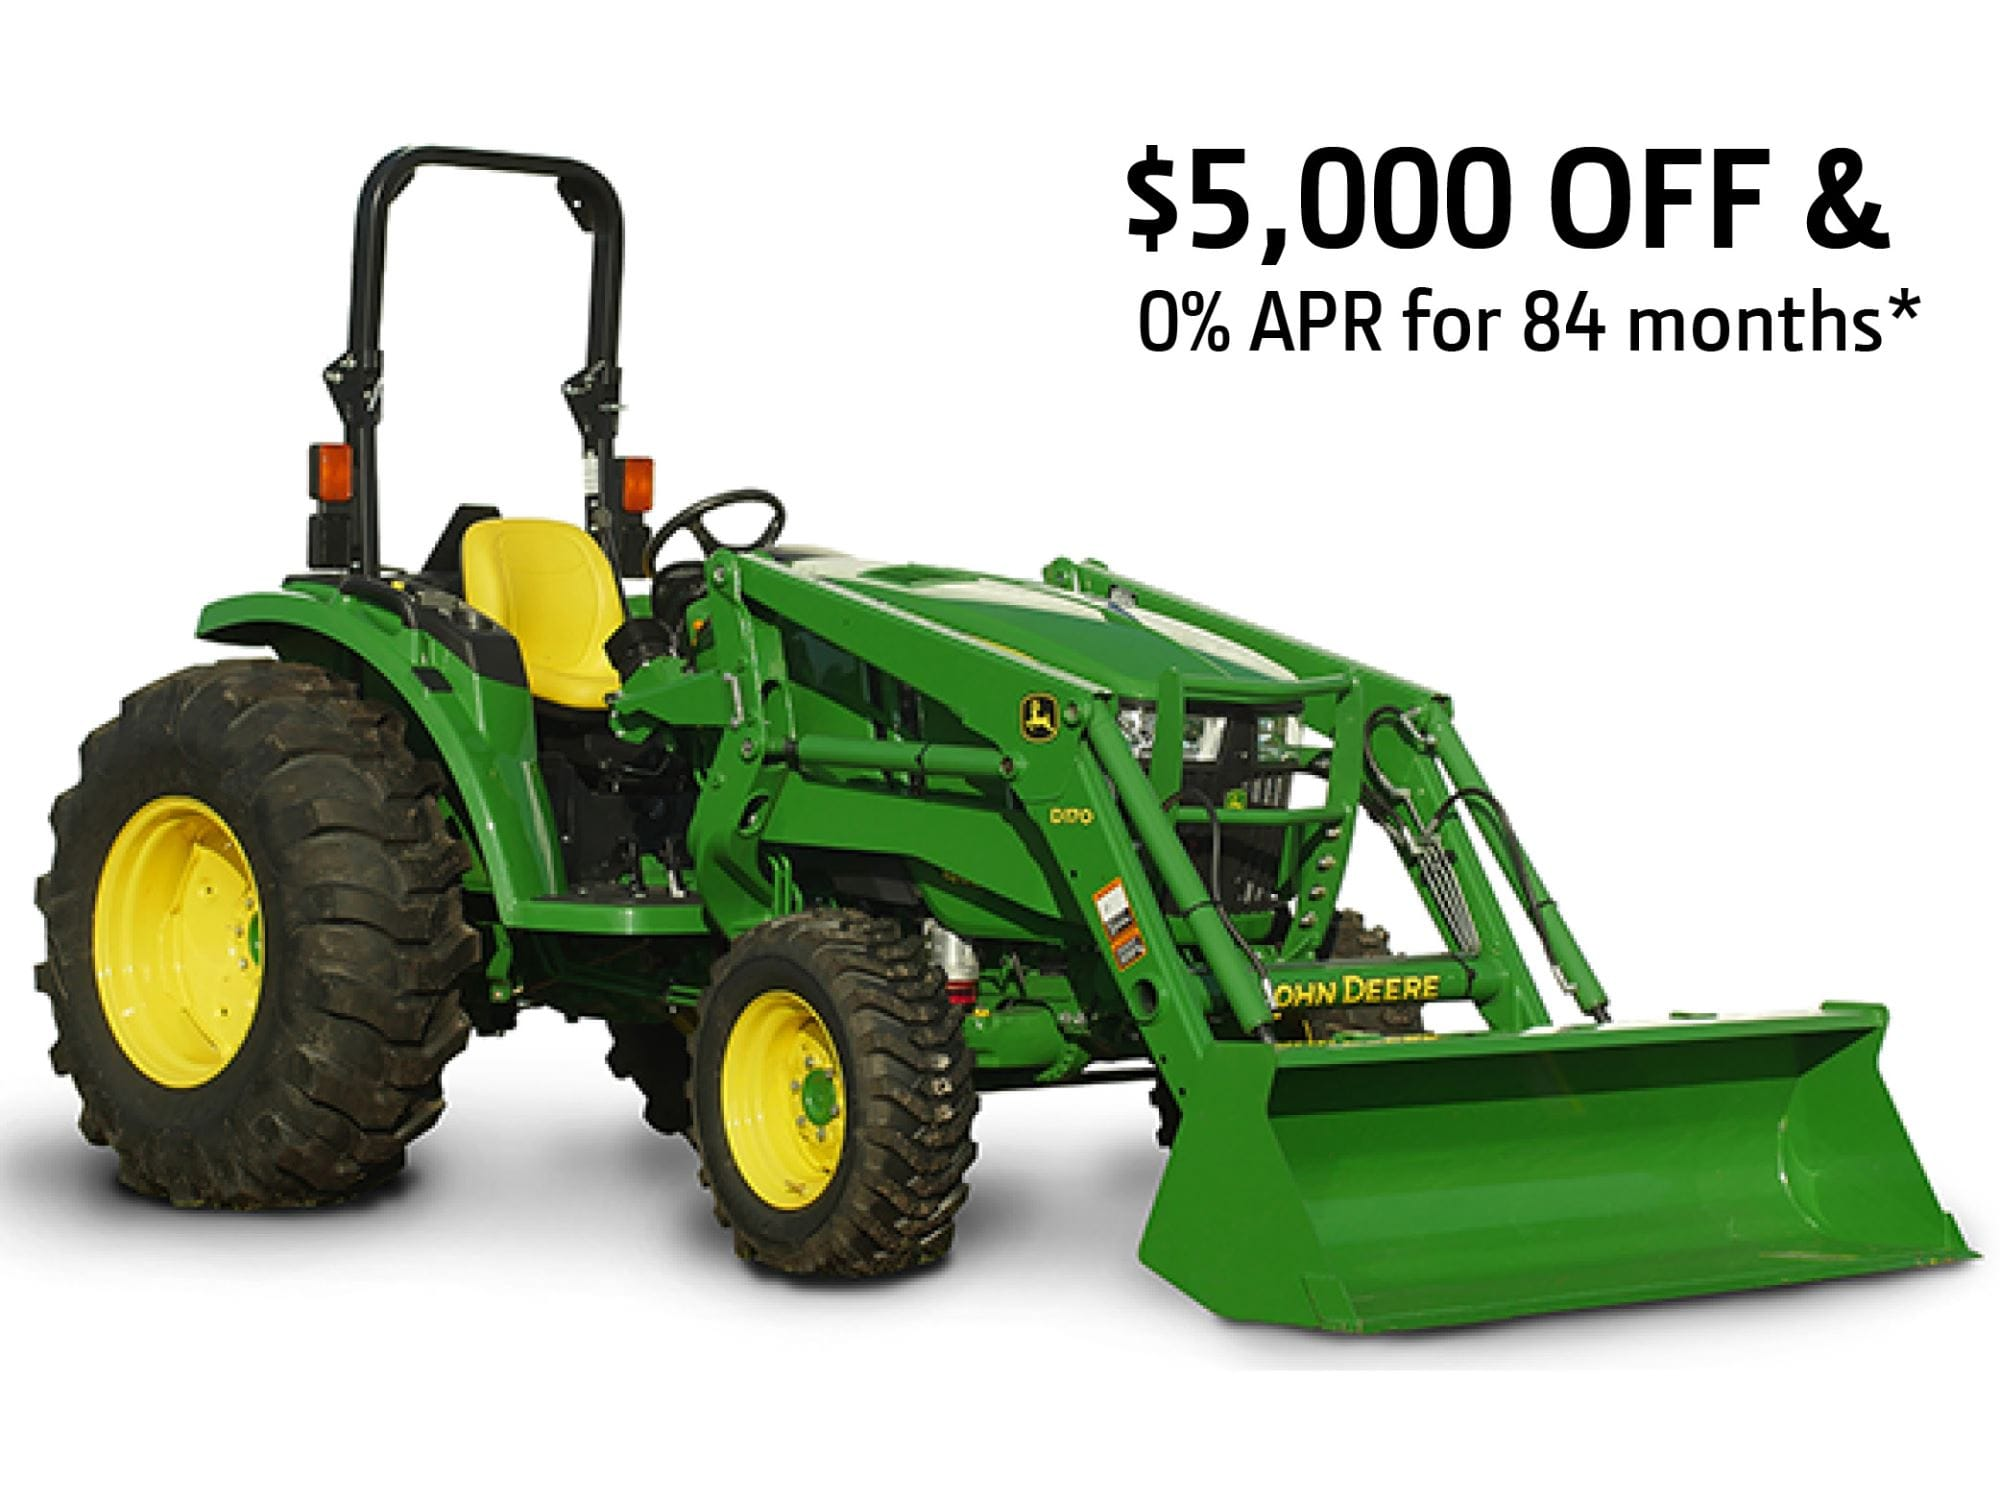 New 4066M Compact Utility Tractor